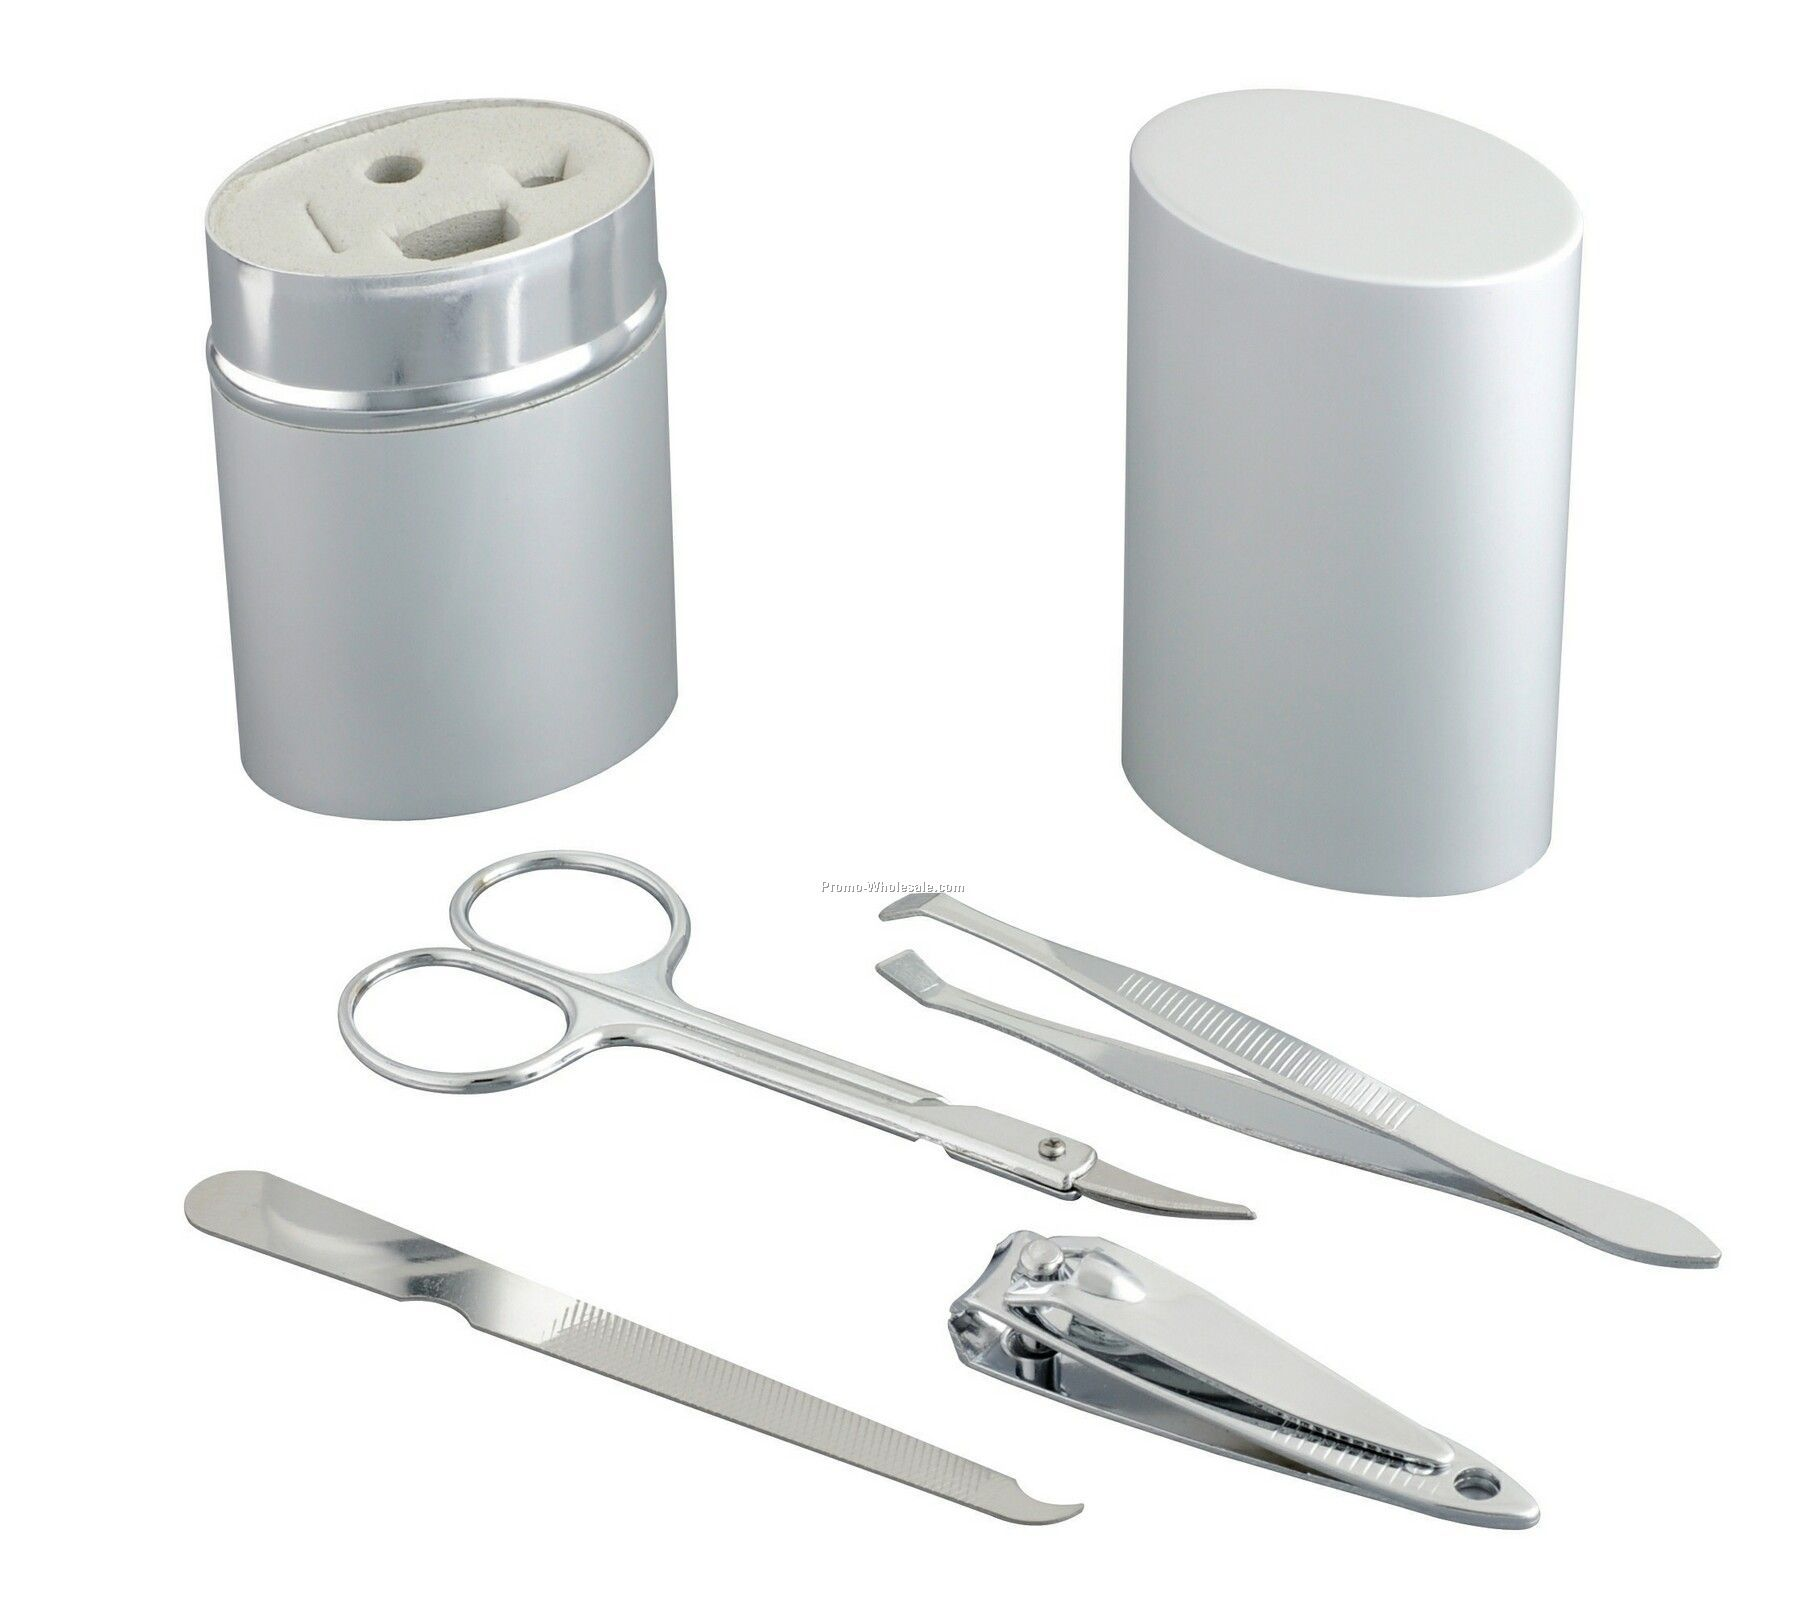 Deluxe Manicure Set